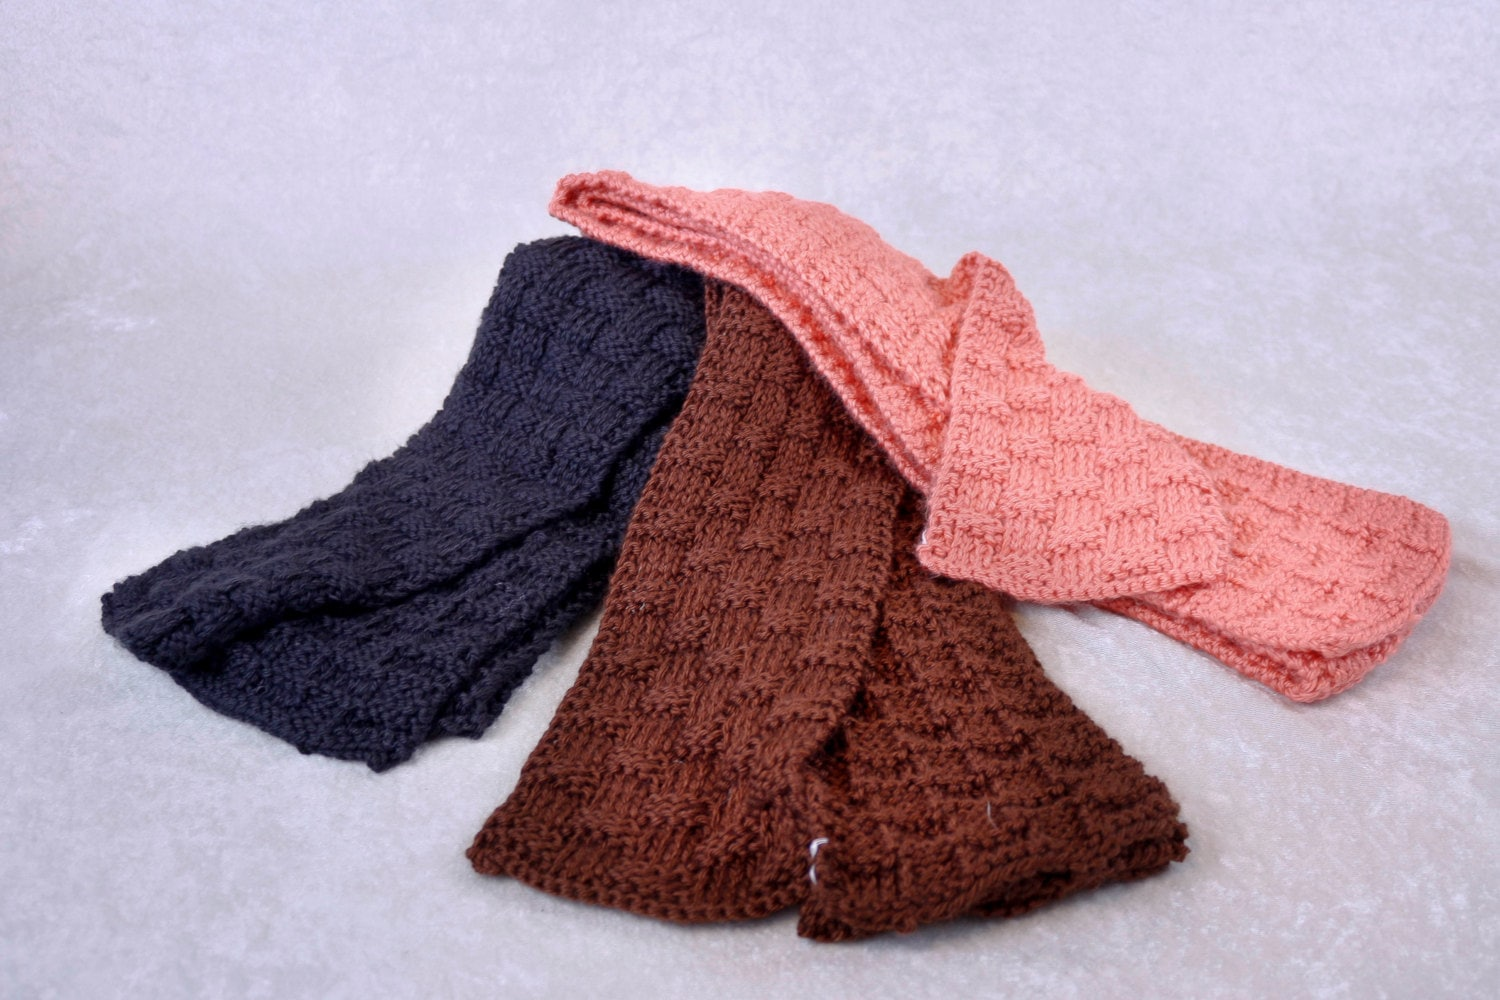 all knitted scarves for sale